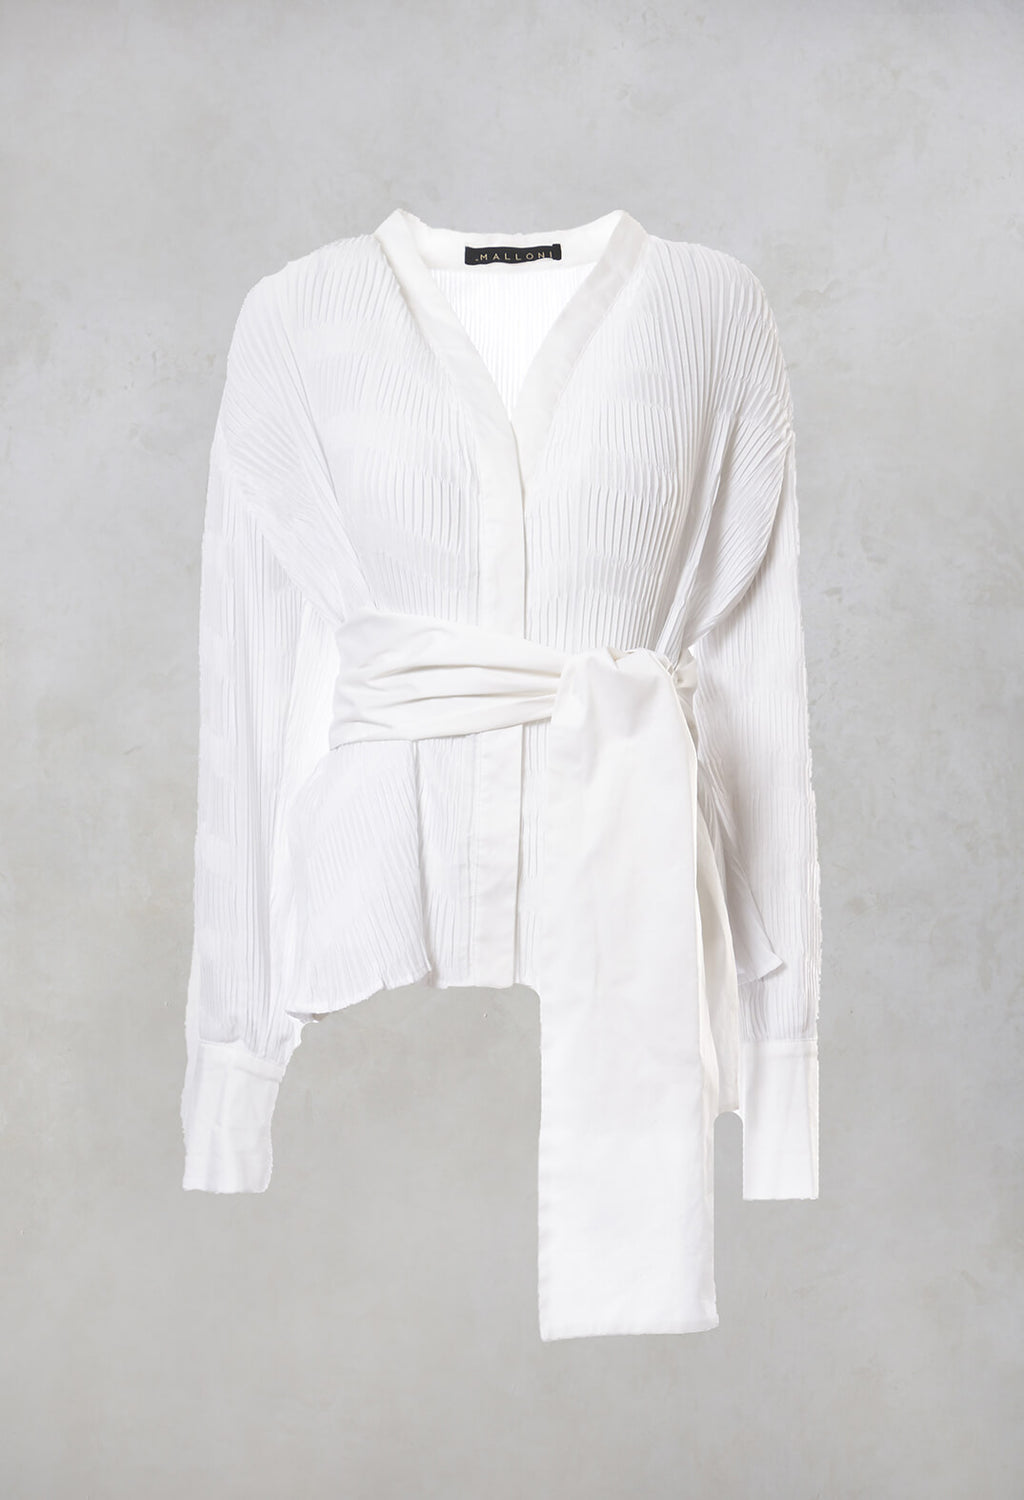 Belted Shirt in Bianco